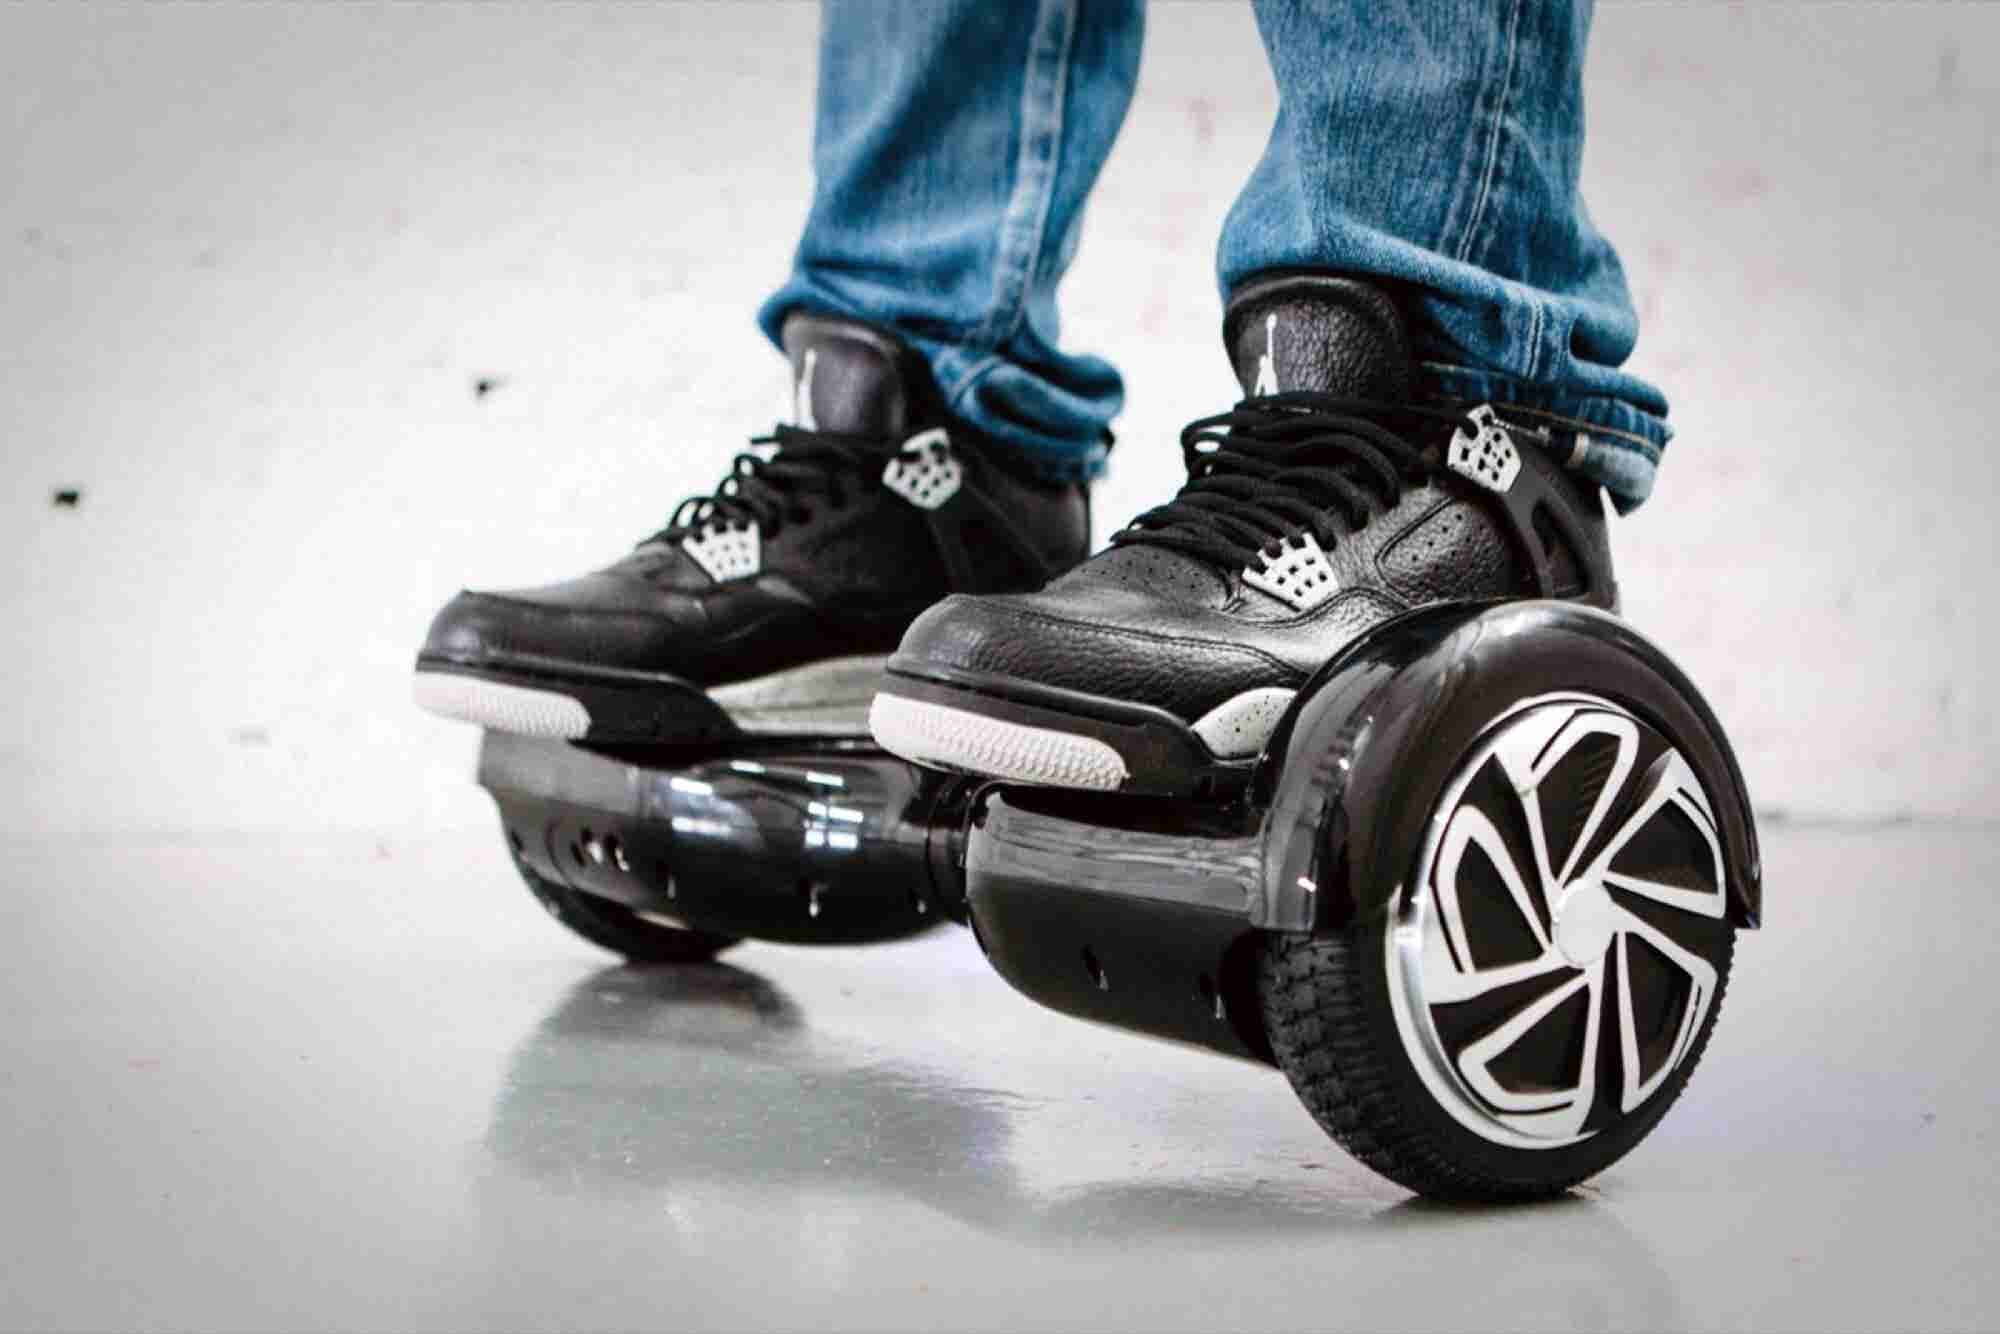 Hoverboards Prohibited at CES 2016